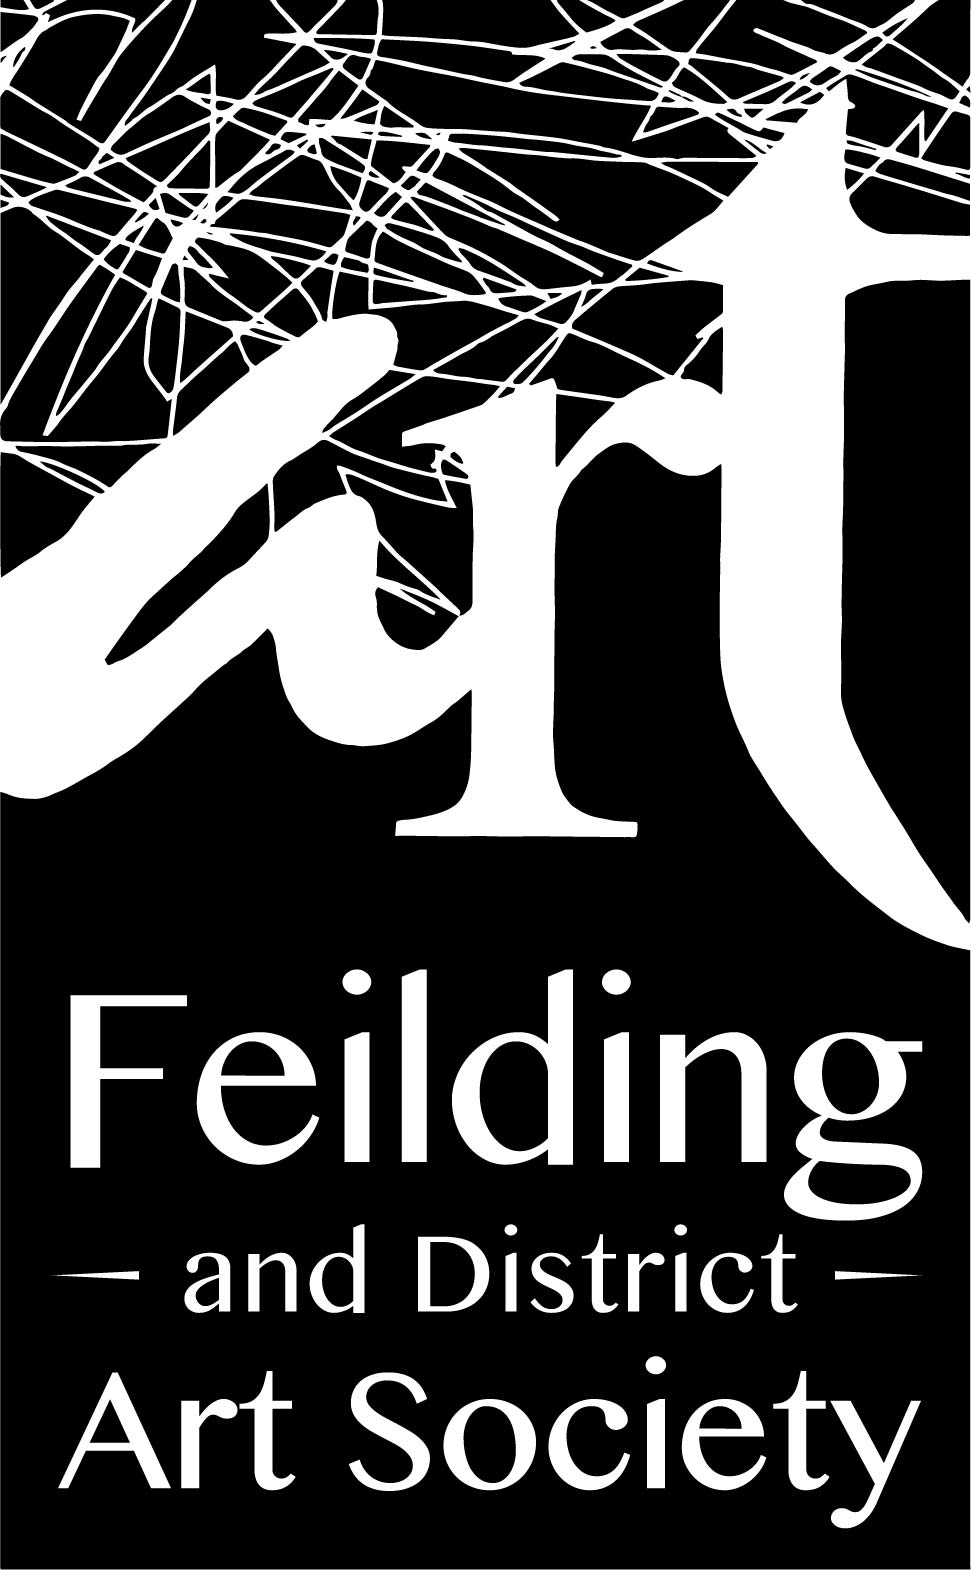 Feilding and District Art Society